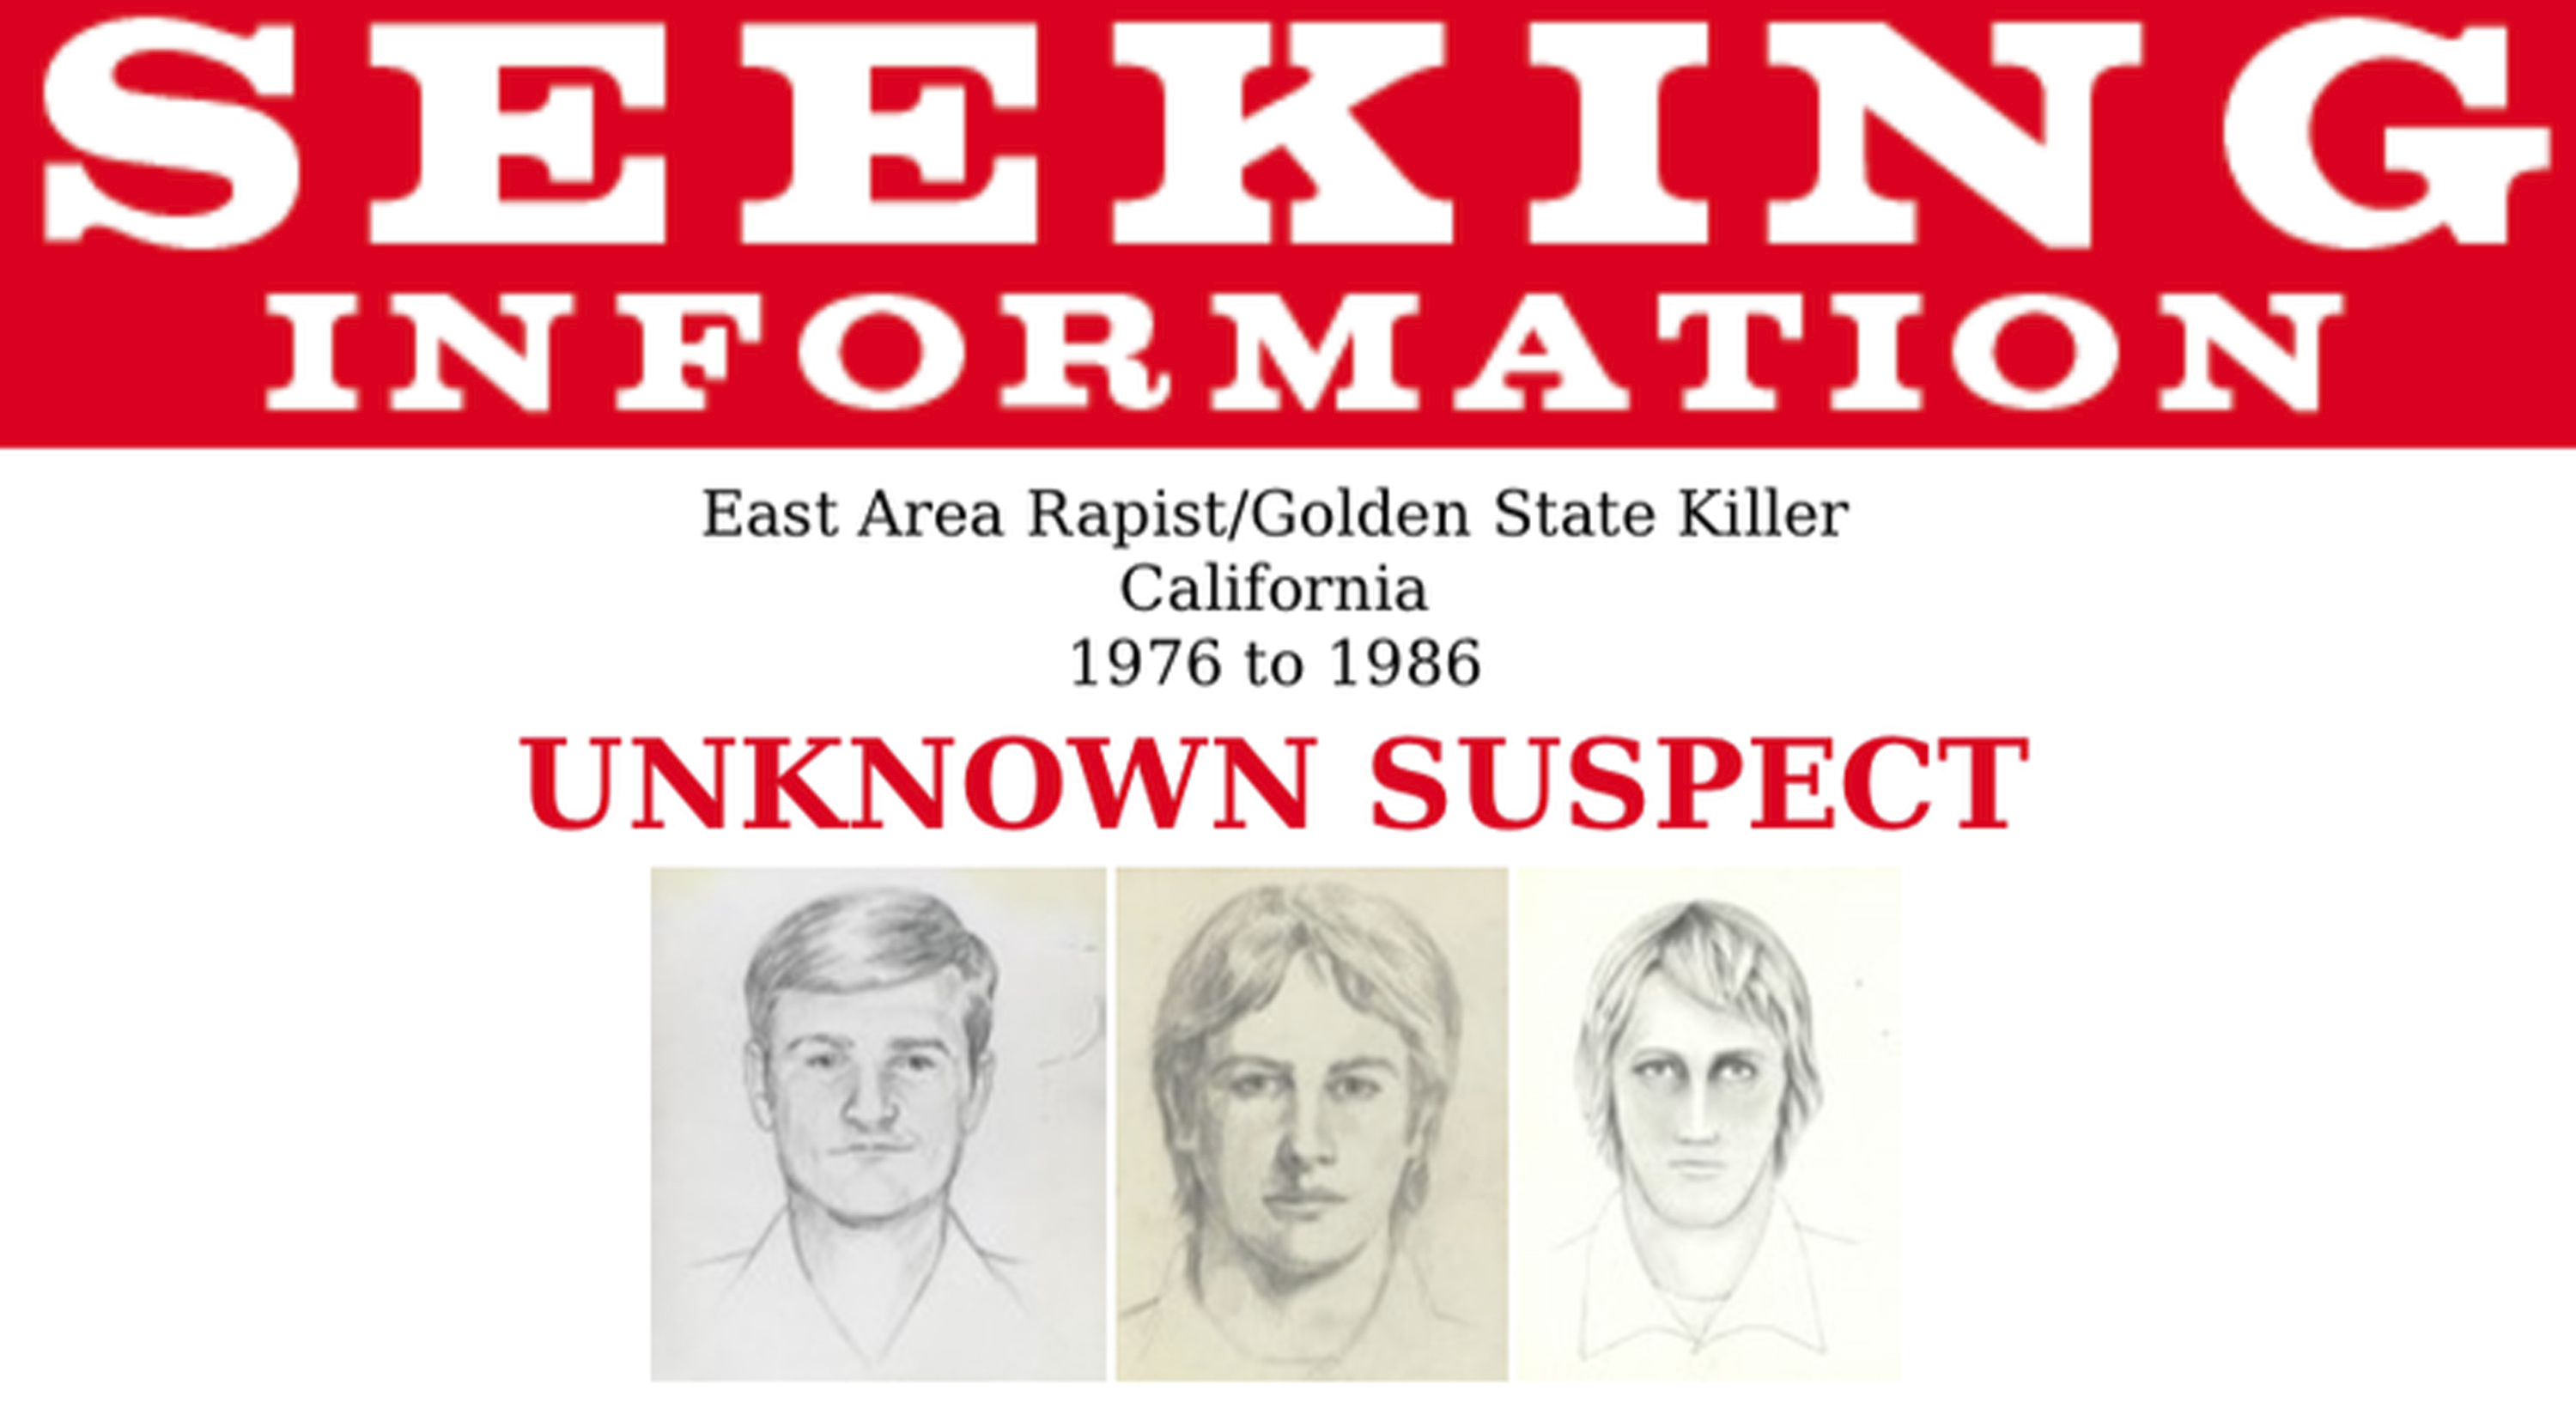 'Golden State Killer' suspect Joseph DeAngelo scheduled to appear in court today